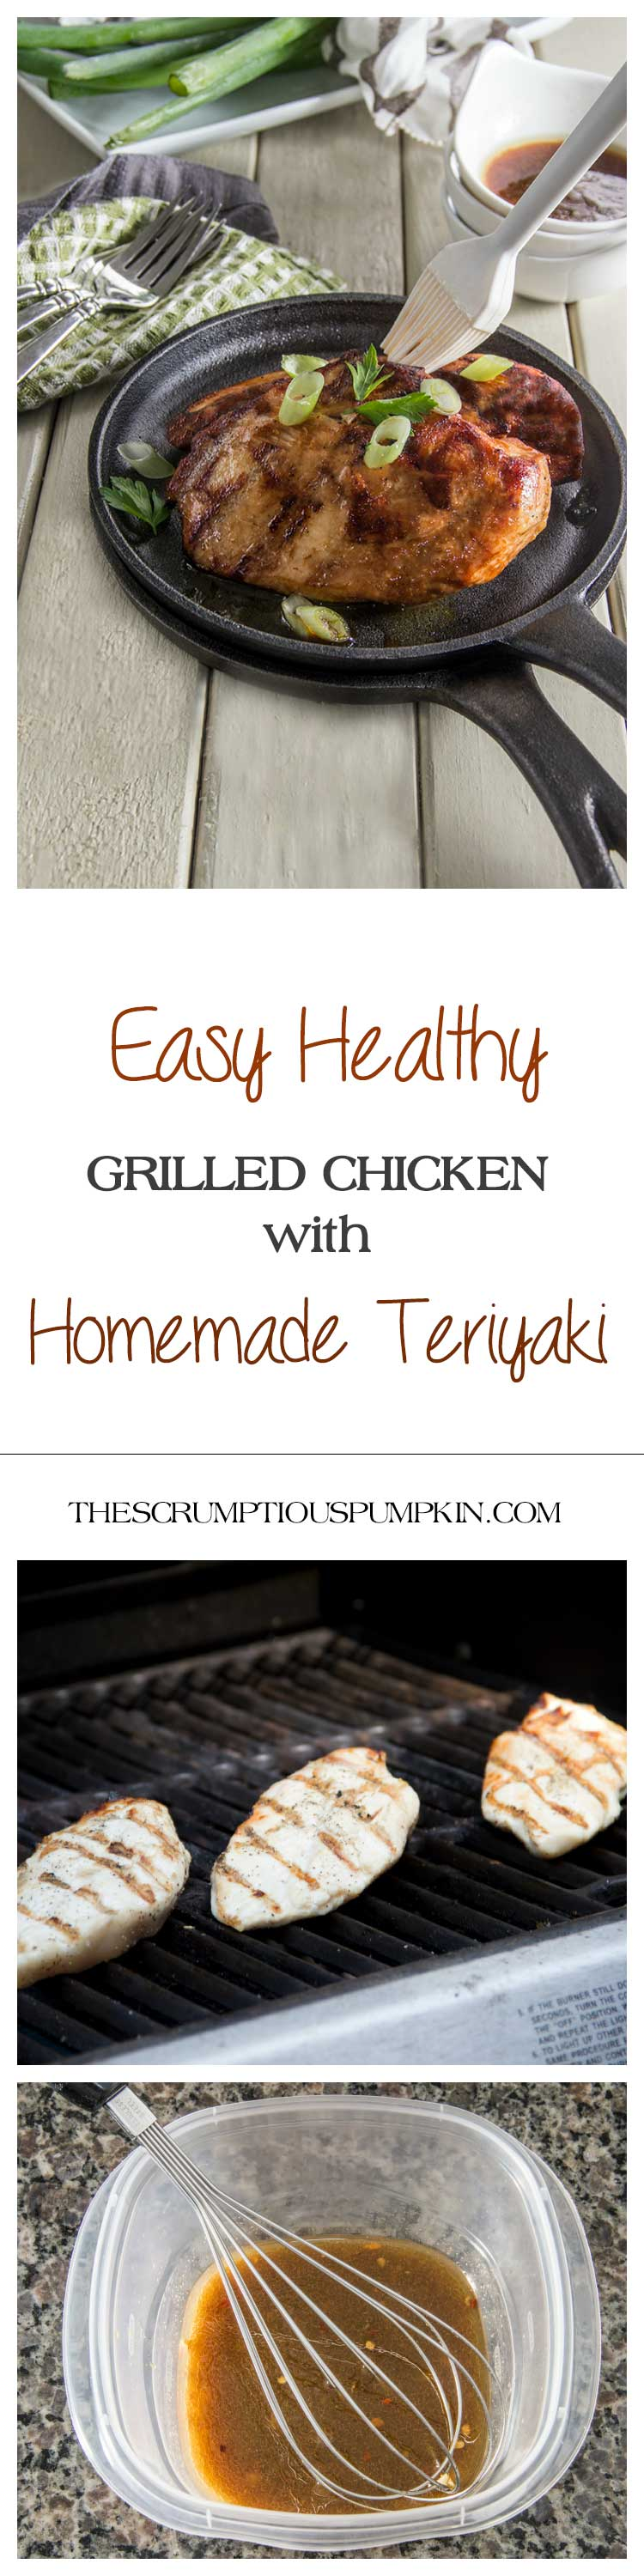 Easy-Healthy-Grilled-Chicken-with-Homemade-Teriyaki